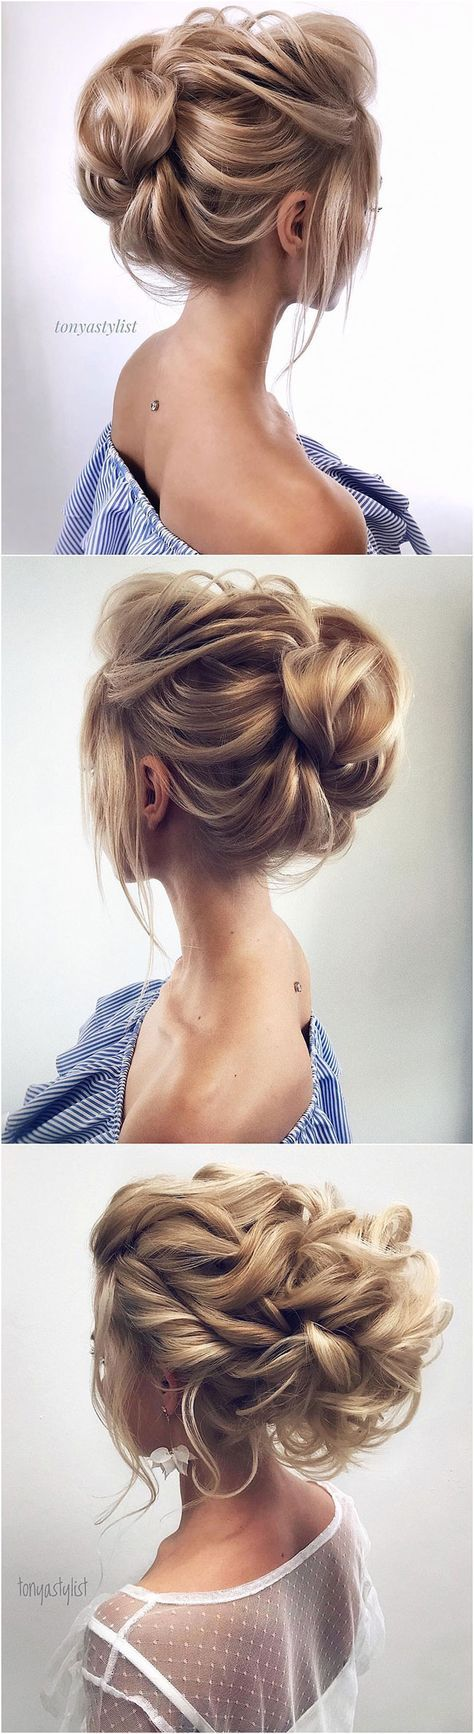 60+ Best Wedding Hairstyles from Tonyastylist for the Modern Bride